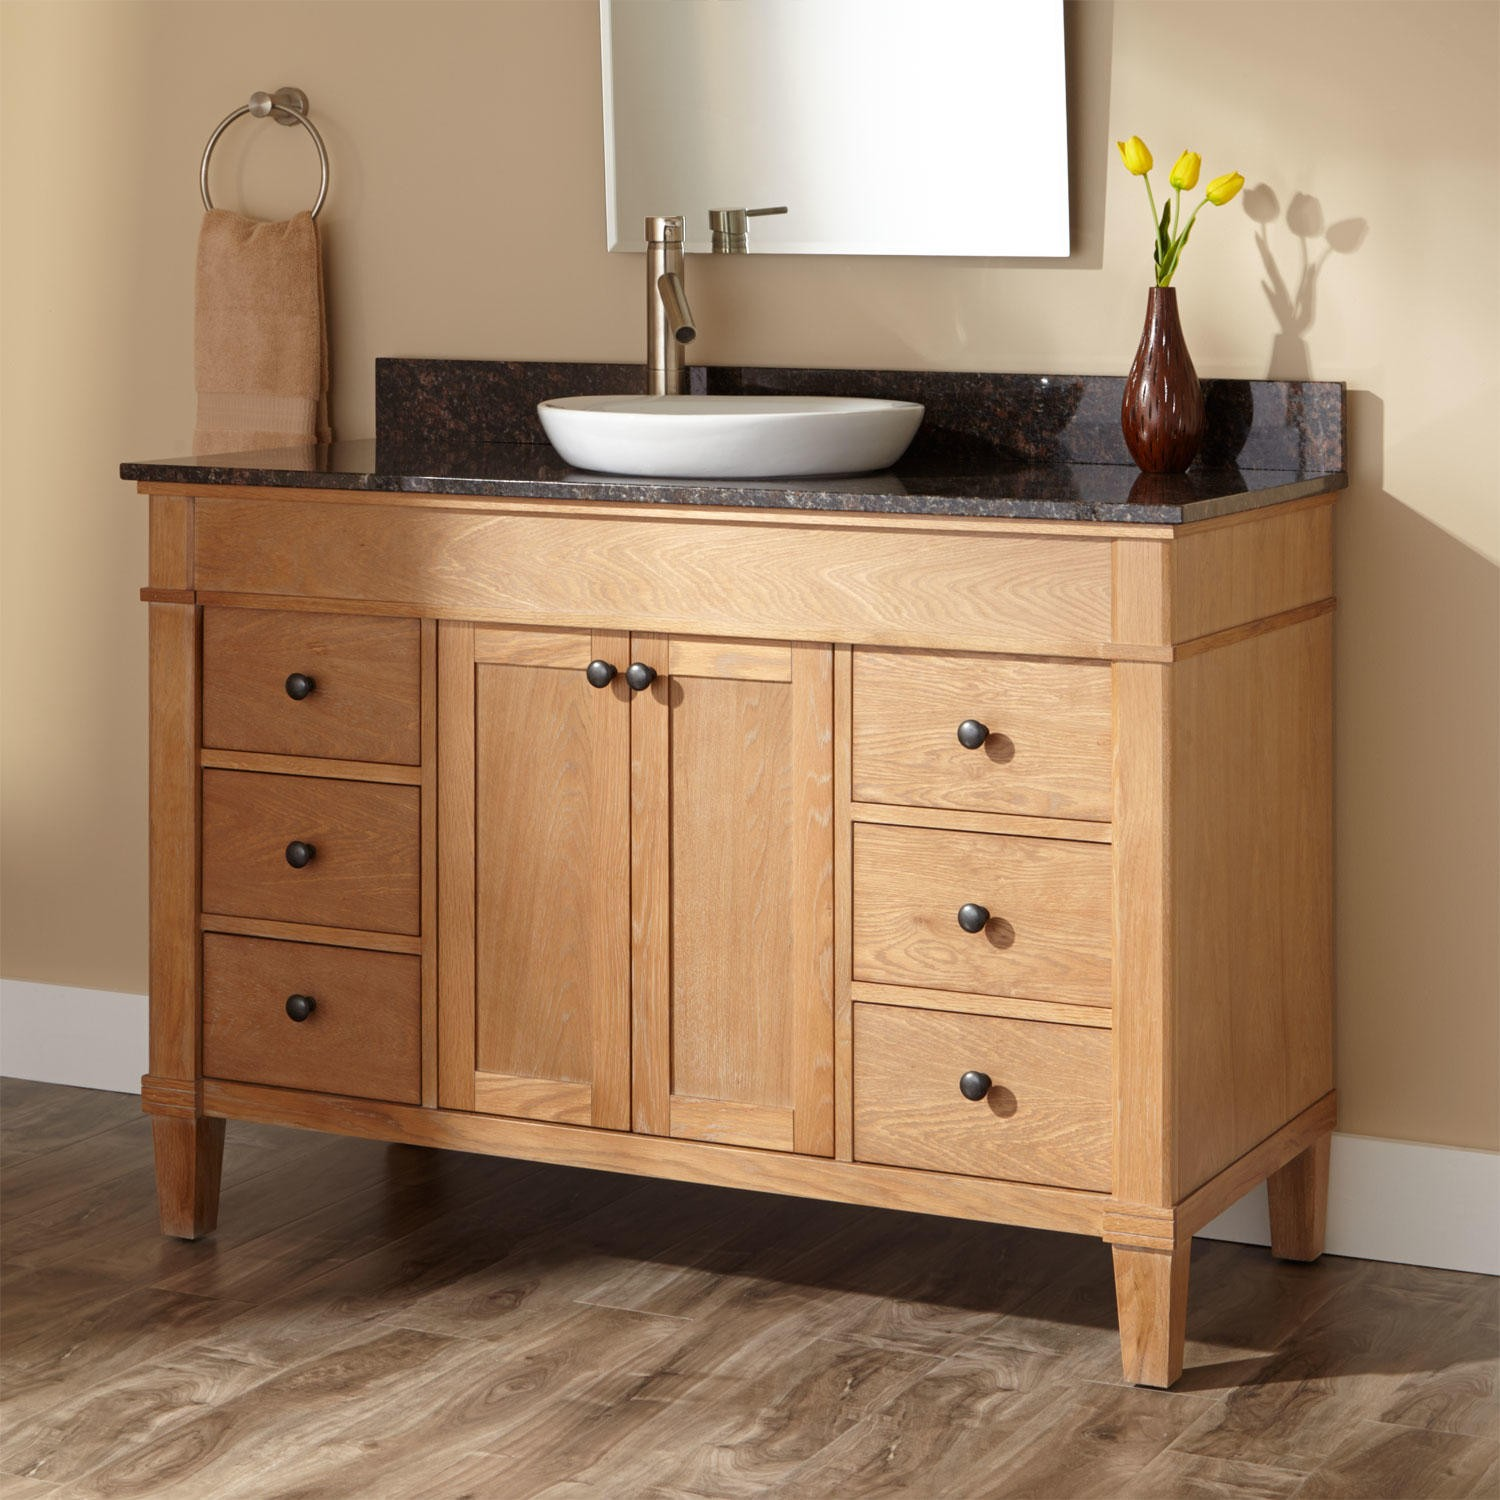 Image of: Ikea Double Vanity Oak